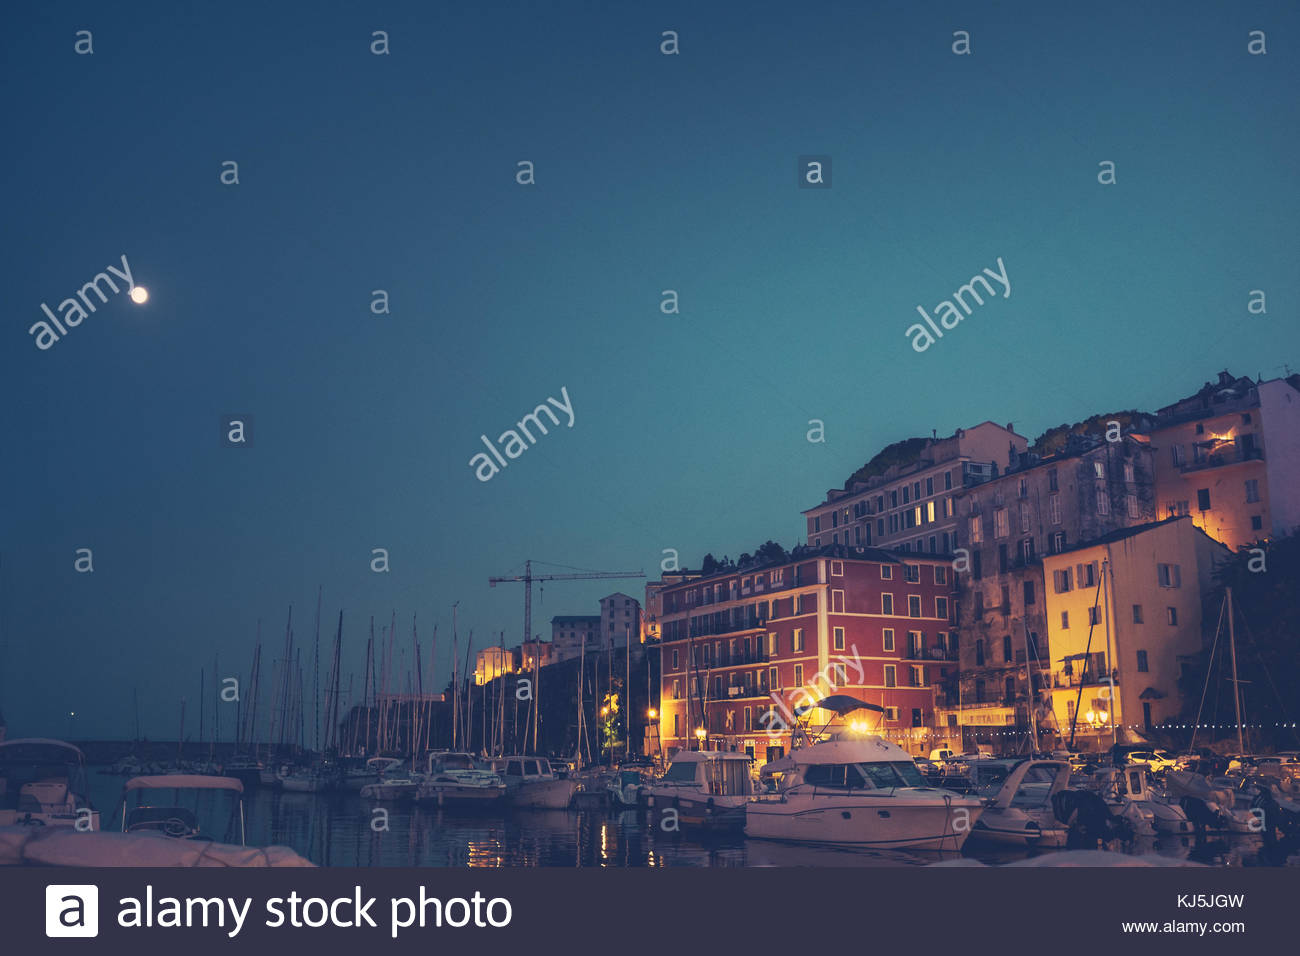 moon over port at night - Stock Image